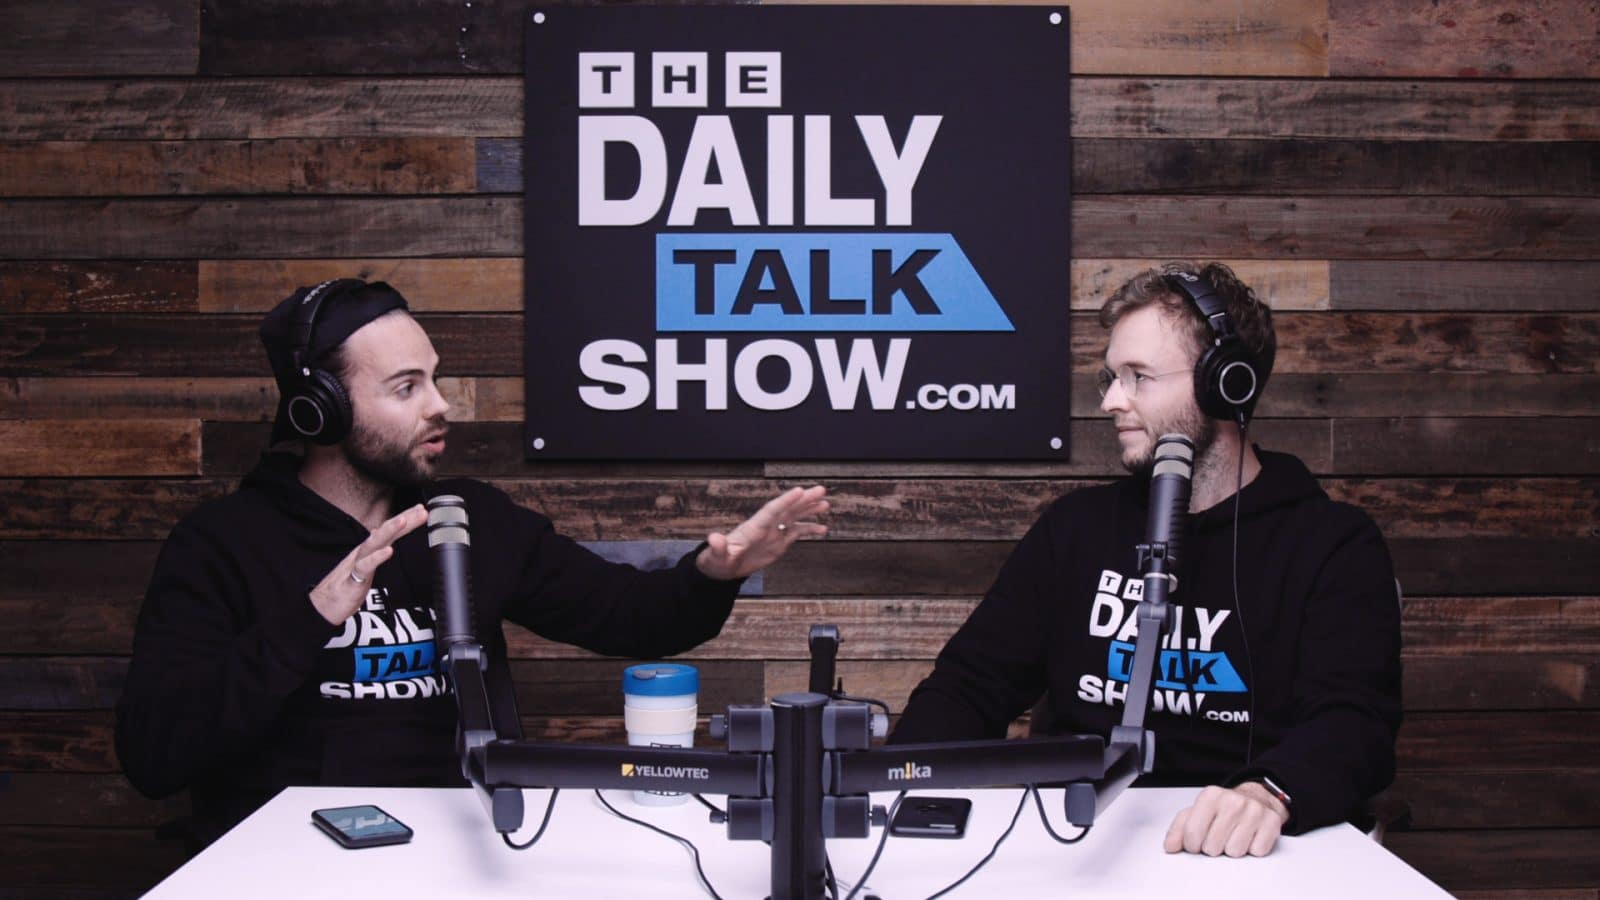 The-Daily-Talk-Show-432